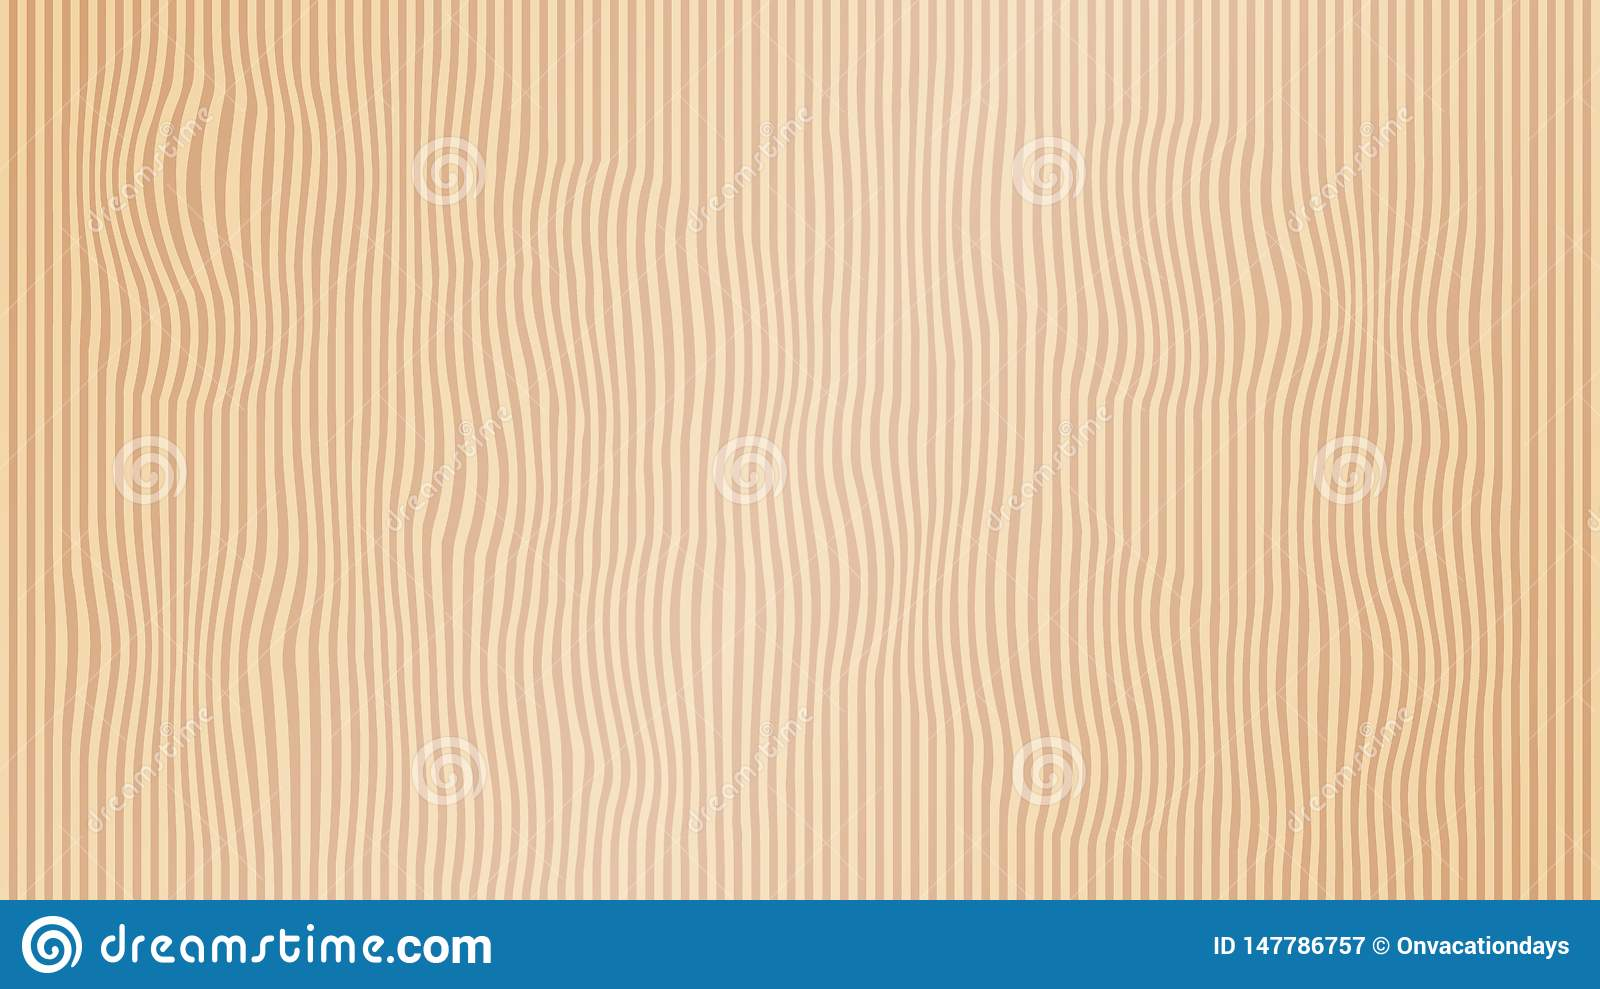 Realistic wood pattern design, made in vector